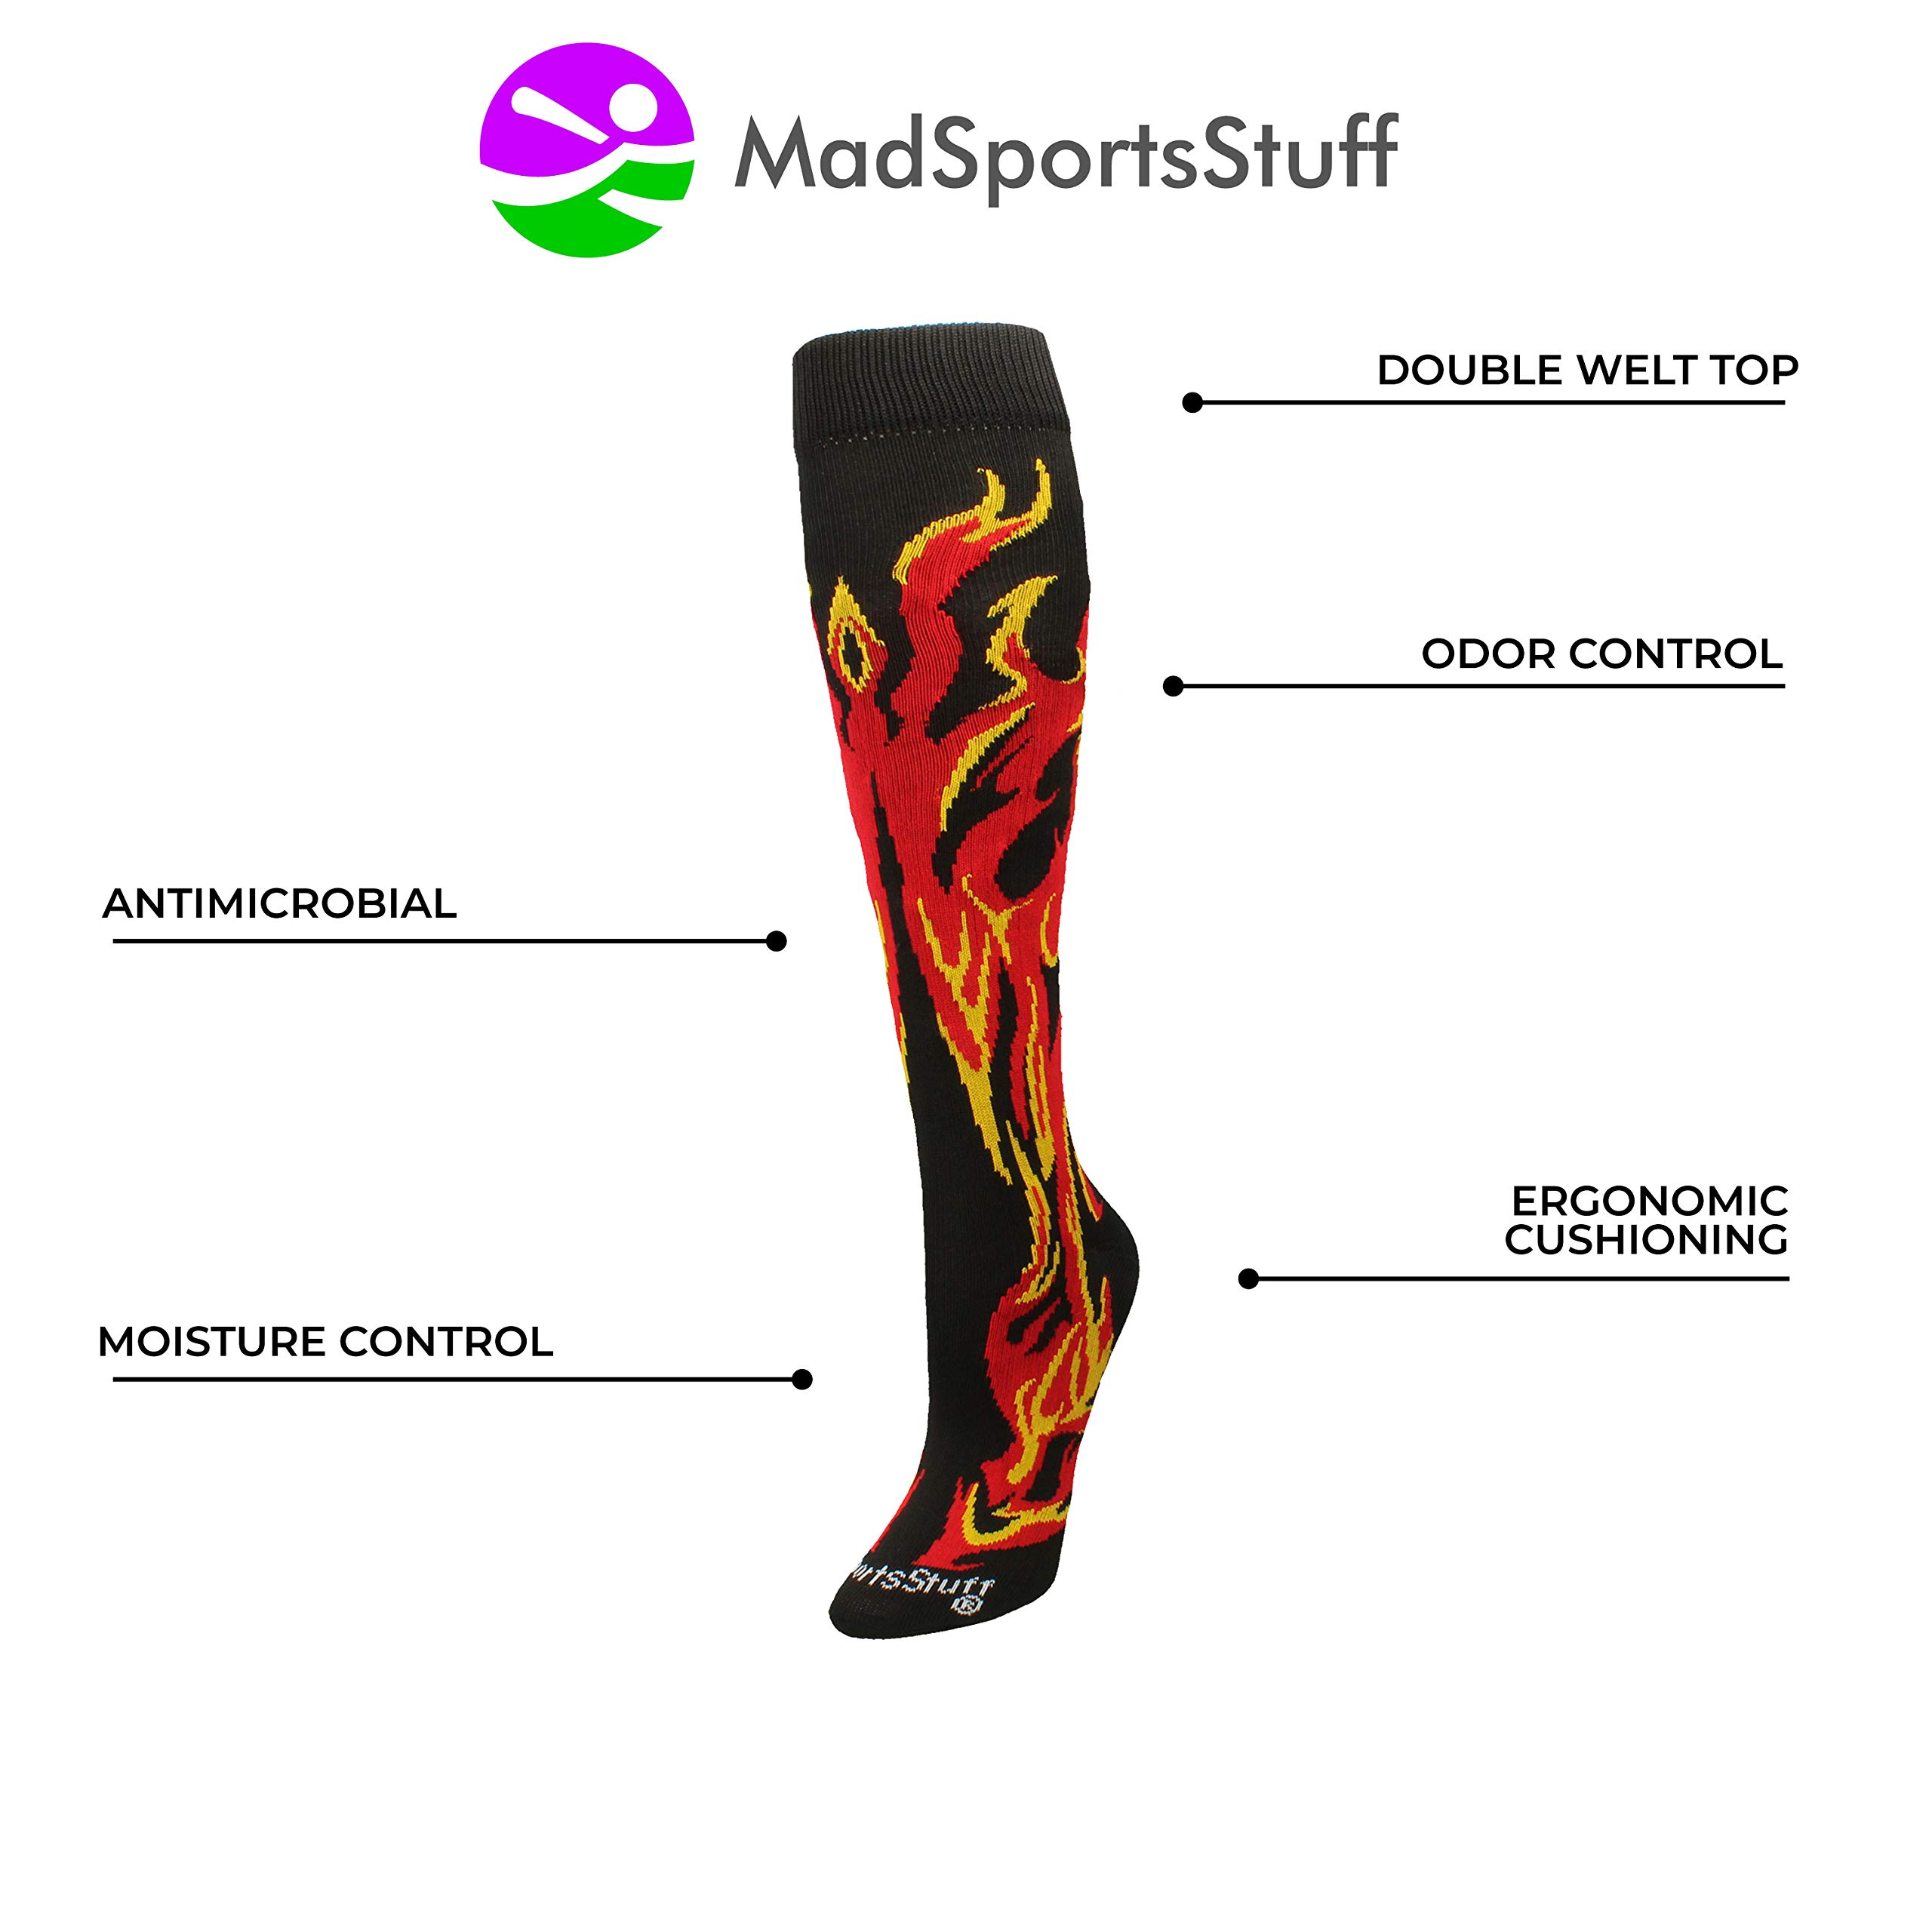 MadSportsStuff Flame Socks Athletic Over The Calf Socks (Black/Red/Gold, Medium) by MadSportsStuff (Image #3)